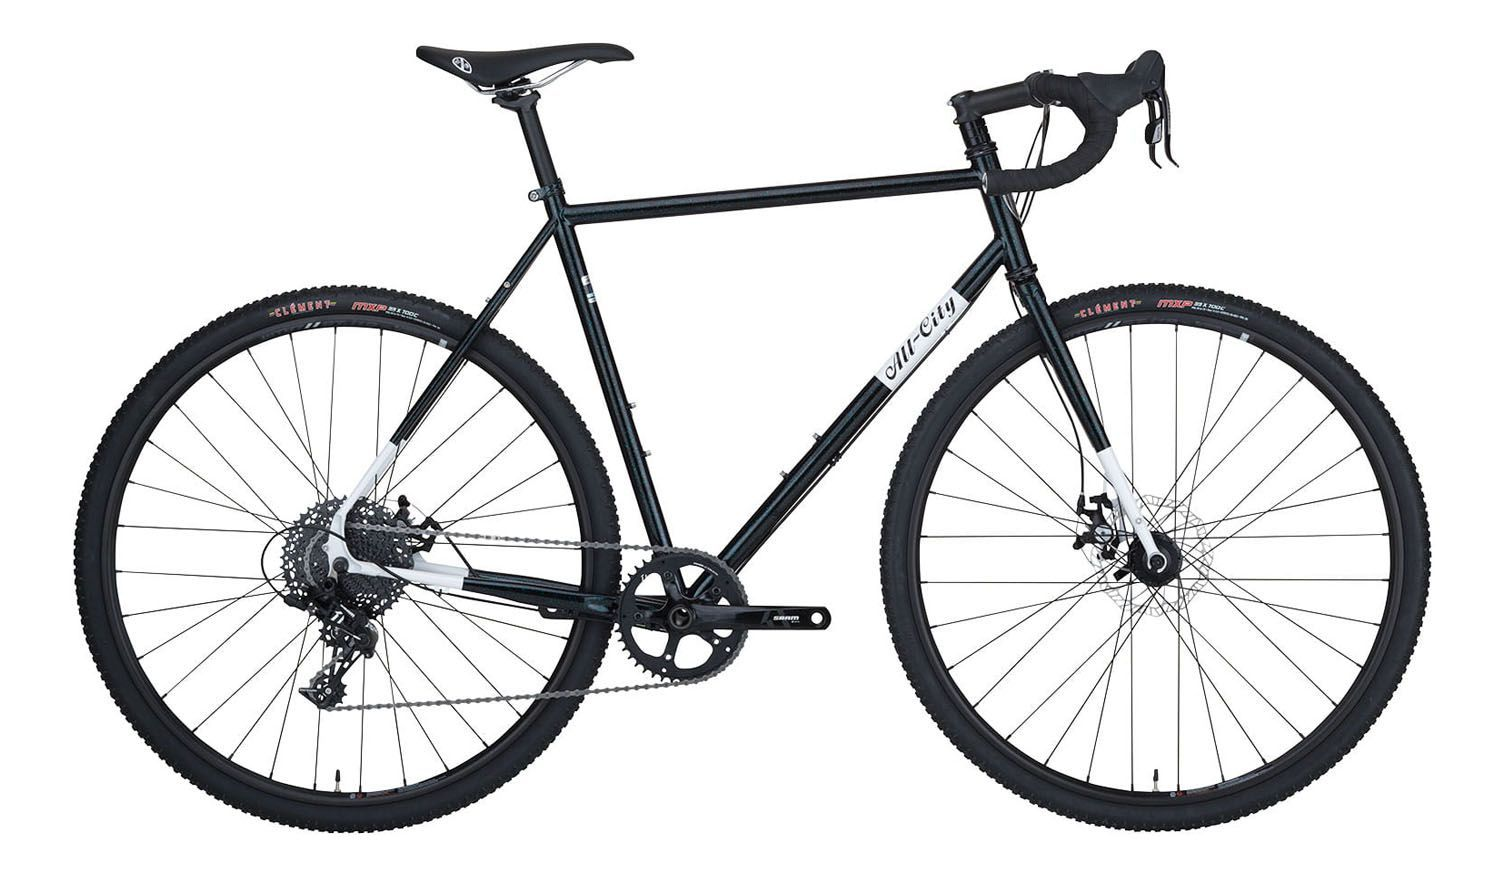 56f7608d2b7 Best Road Bikes - 14 Bikes for Commuting, Training, Racing, and ...